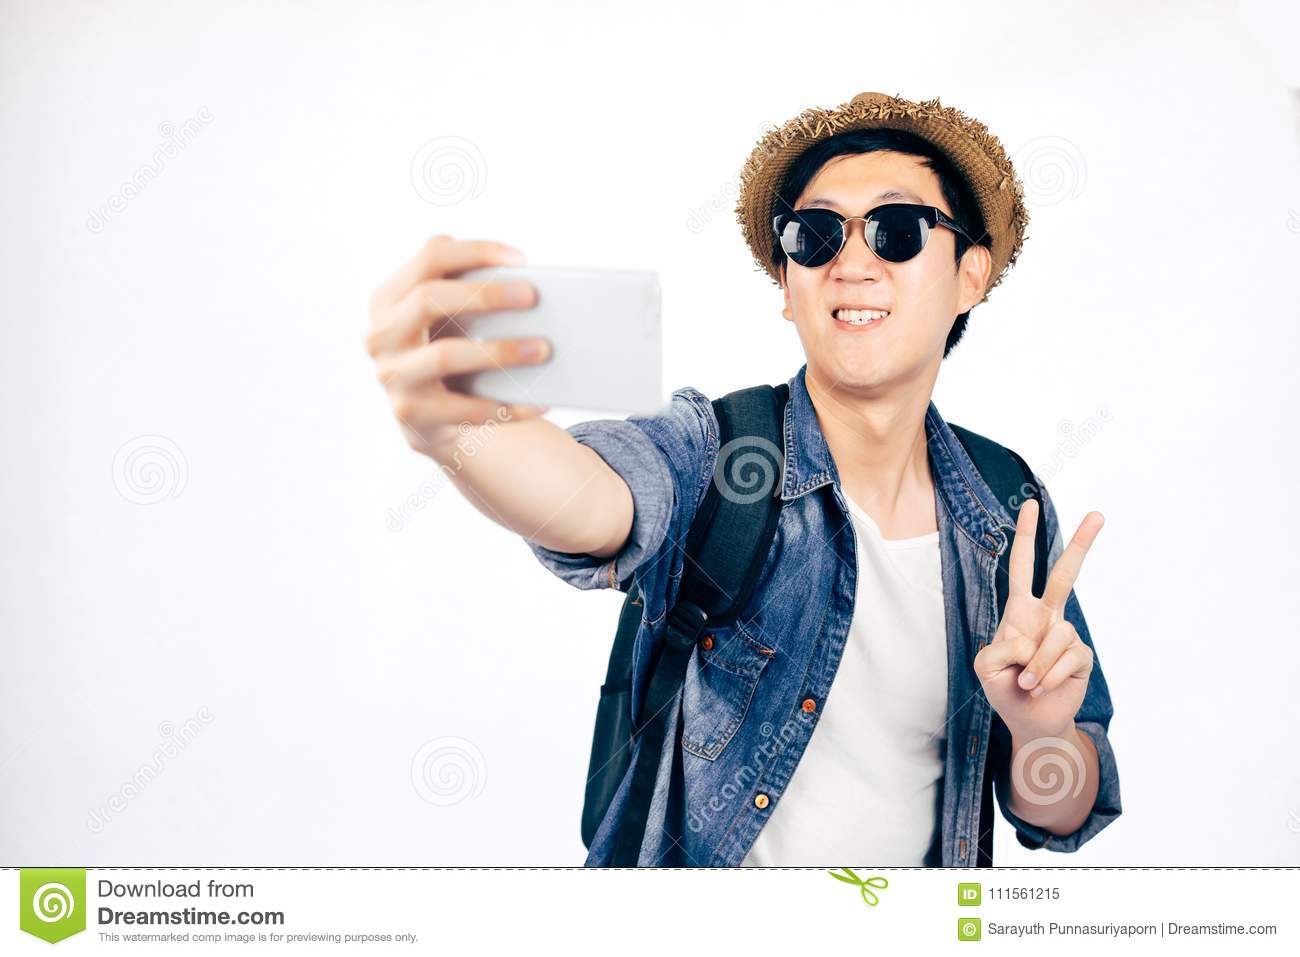 Young Asian tourist with hat smiling and holding smartphone taking a selfie photo isolated over white background.